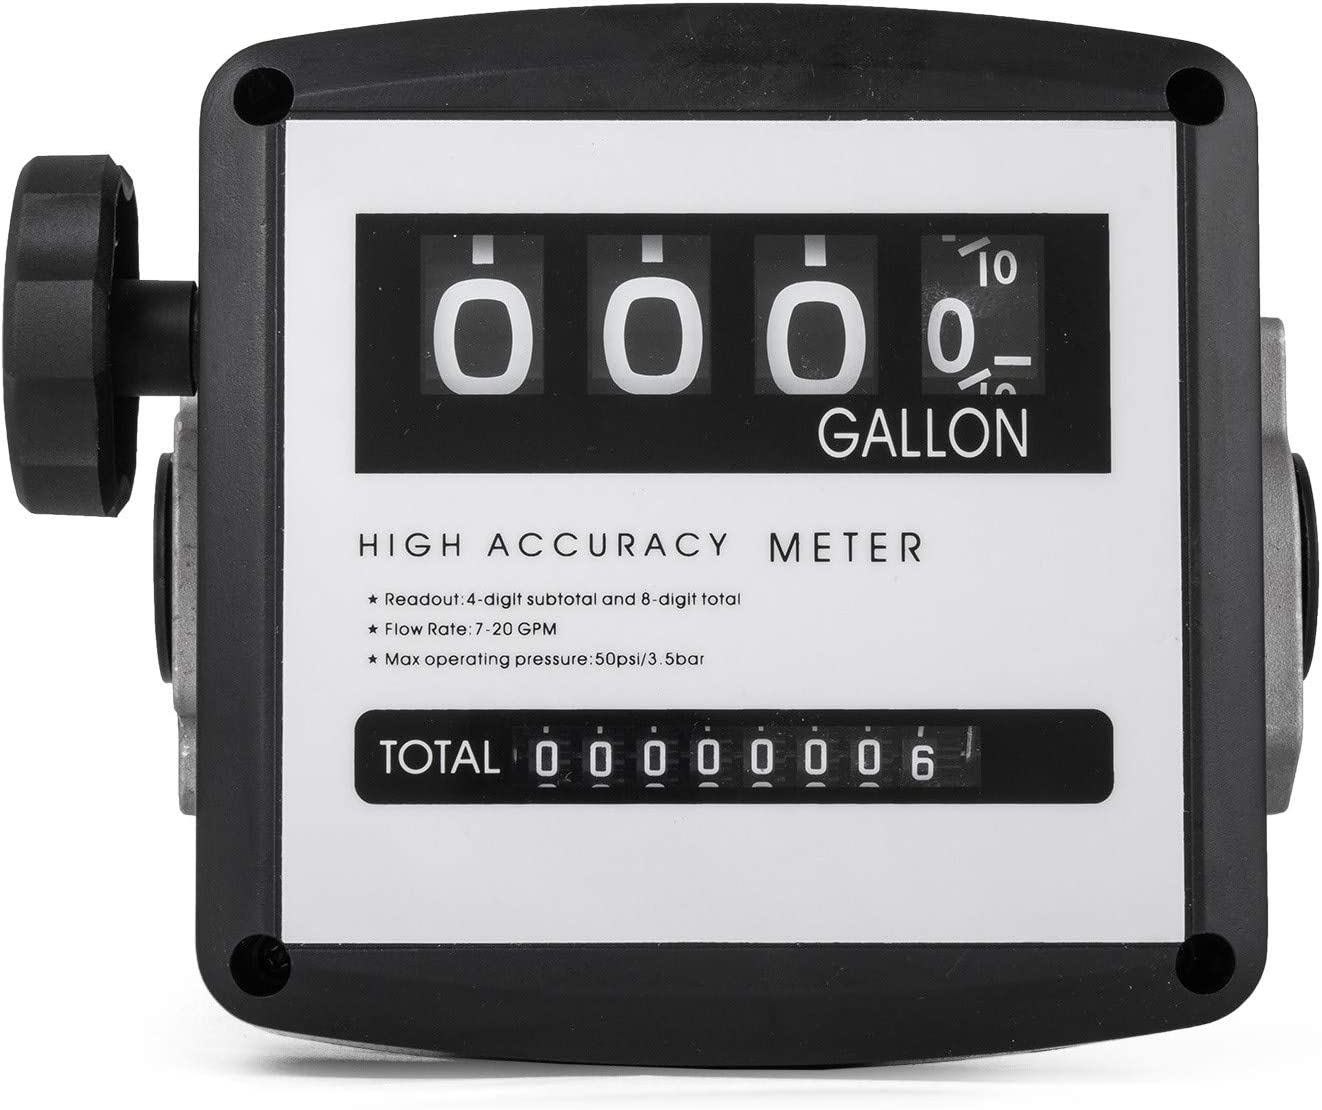 Bestauto Mechanical Fuel Meter 7 to 20 GPM Digital Diesel Fuel Flow Meter Black Fuel Meter Diesel For All Fuel Transfer Pumps 10Bar